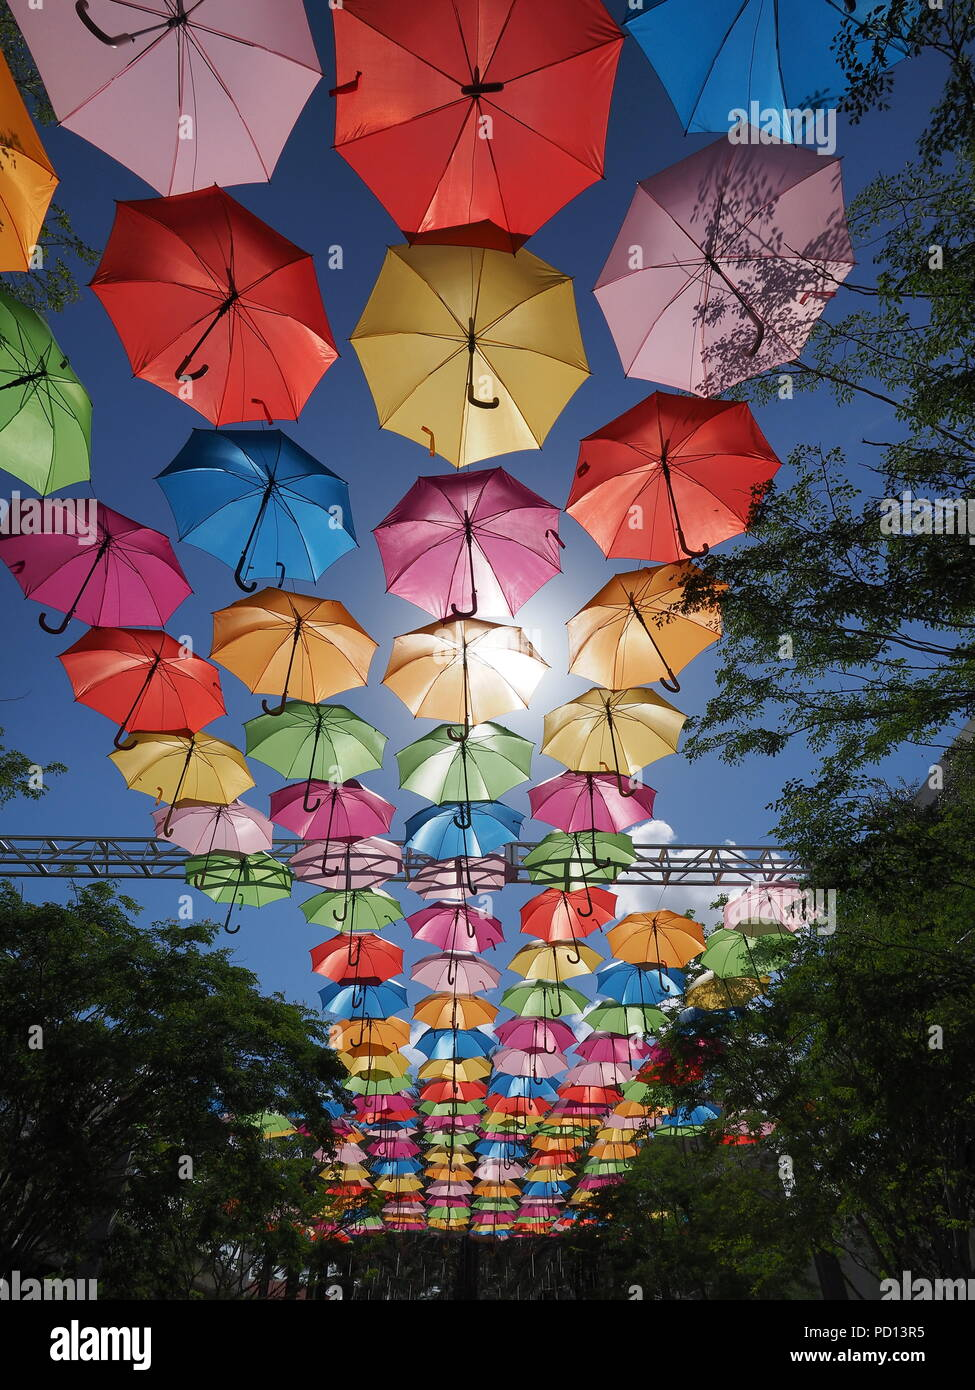 Umbrella Sky in Coral Gables, Florida, a joint art project by the City of Coral Gables and the Portuguese company Sextafeira. Stock Photo